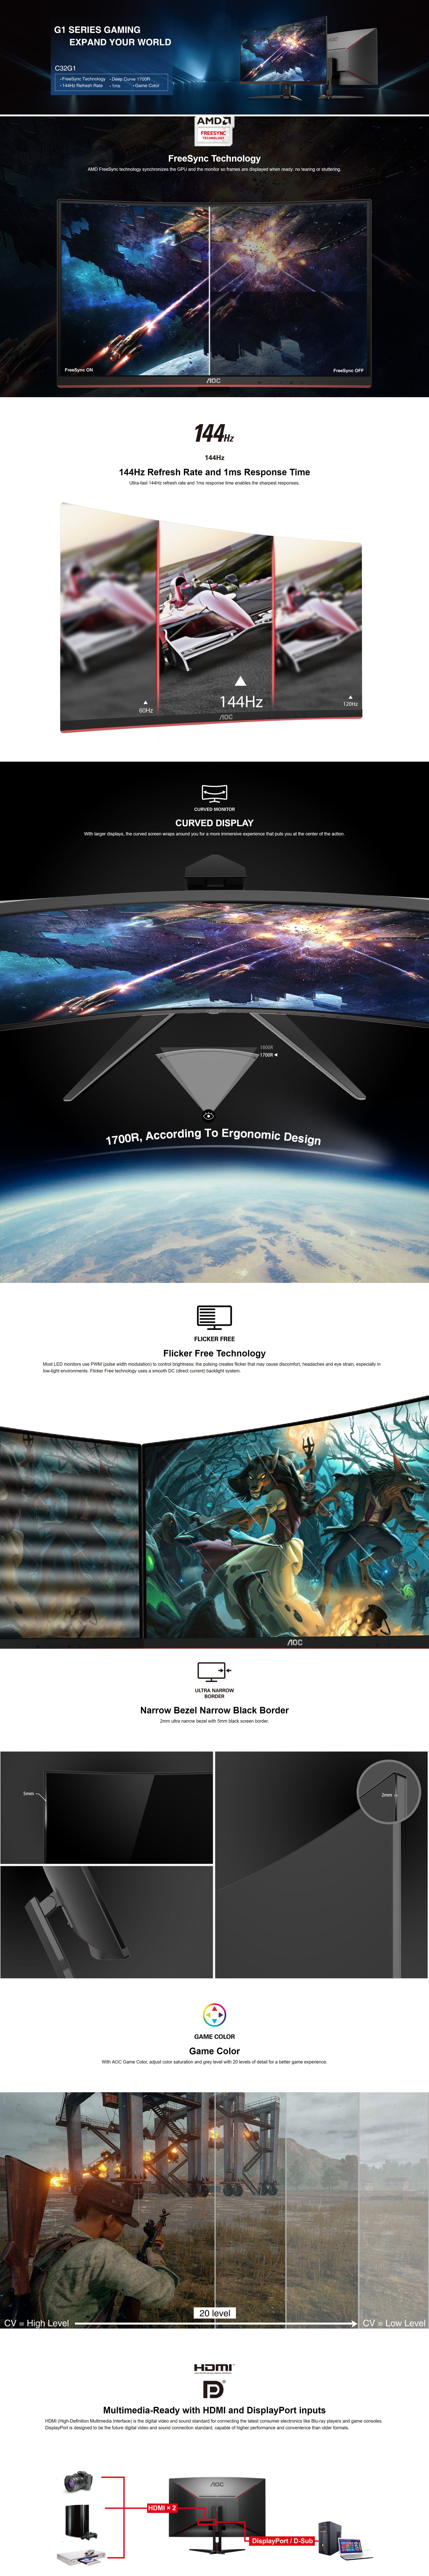 """A large marketing image providing additional information about the product AOC C32G1 31.5"""" Full HD FreeSync Curved 1MS 144Hz VA LED Gaming Monitor - Additional alt info not provided"""